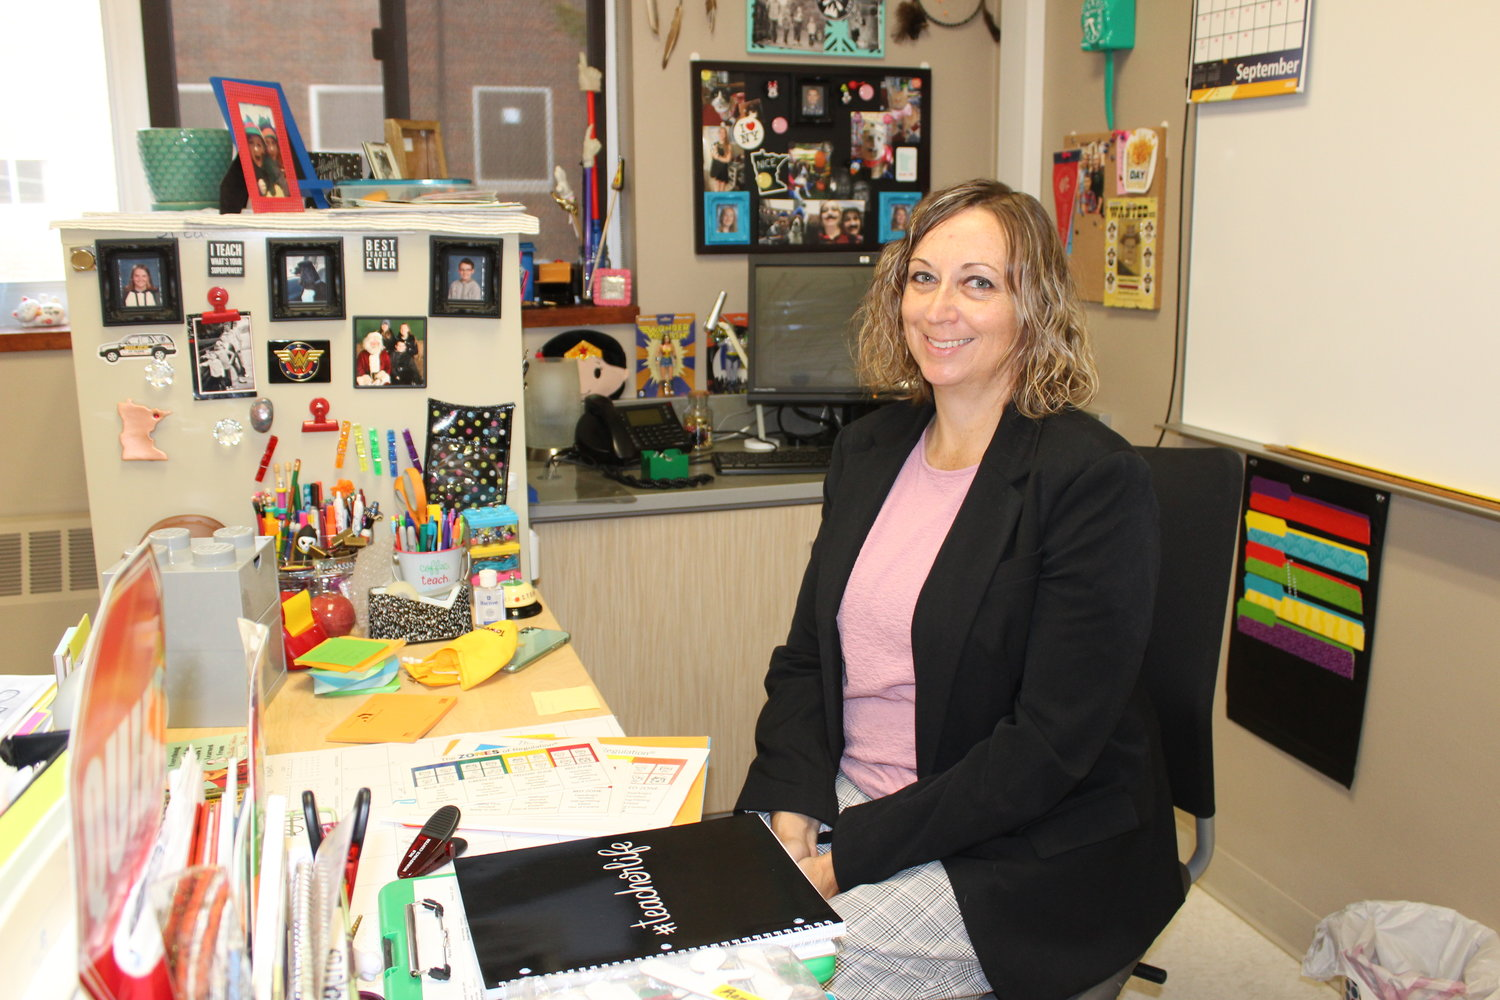 Brandi 